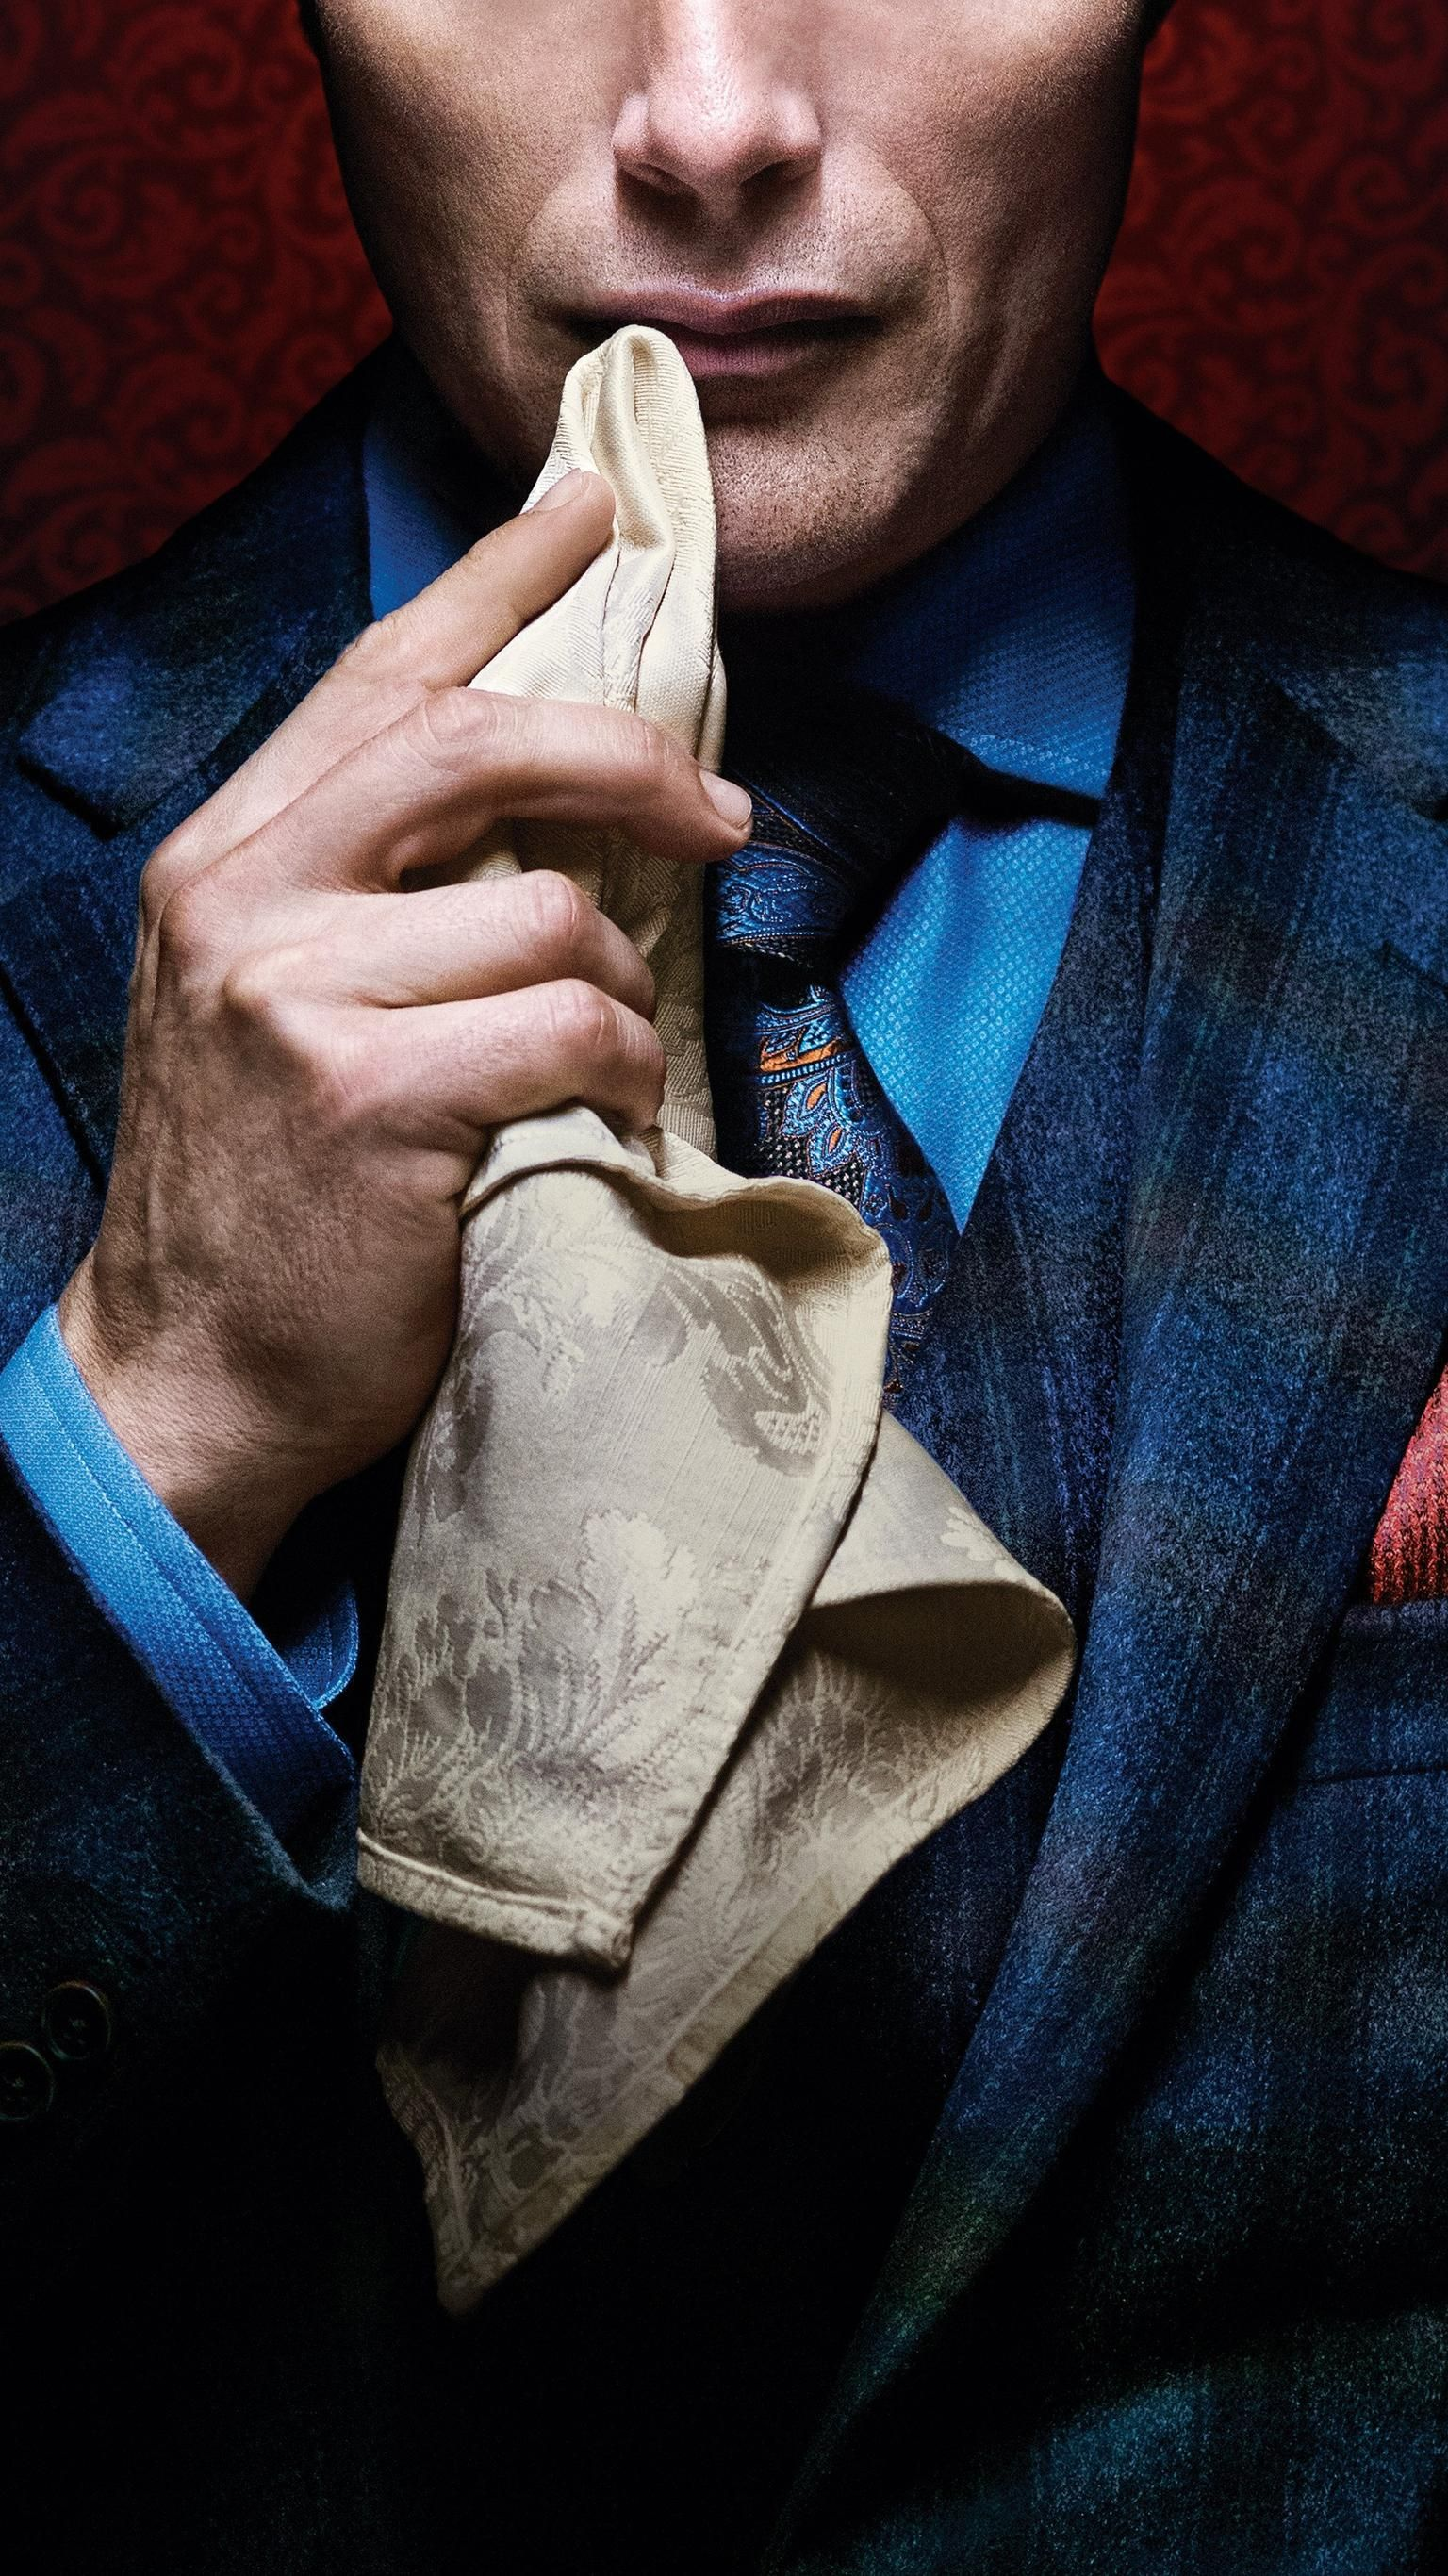 Hannibal Phone Wallpaper Hannibal wallpaper, Hannibal